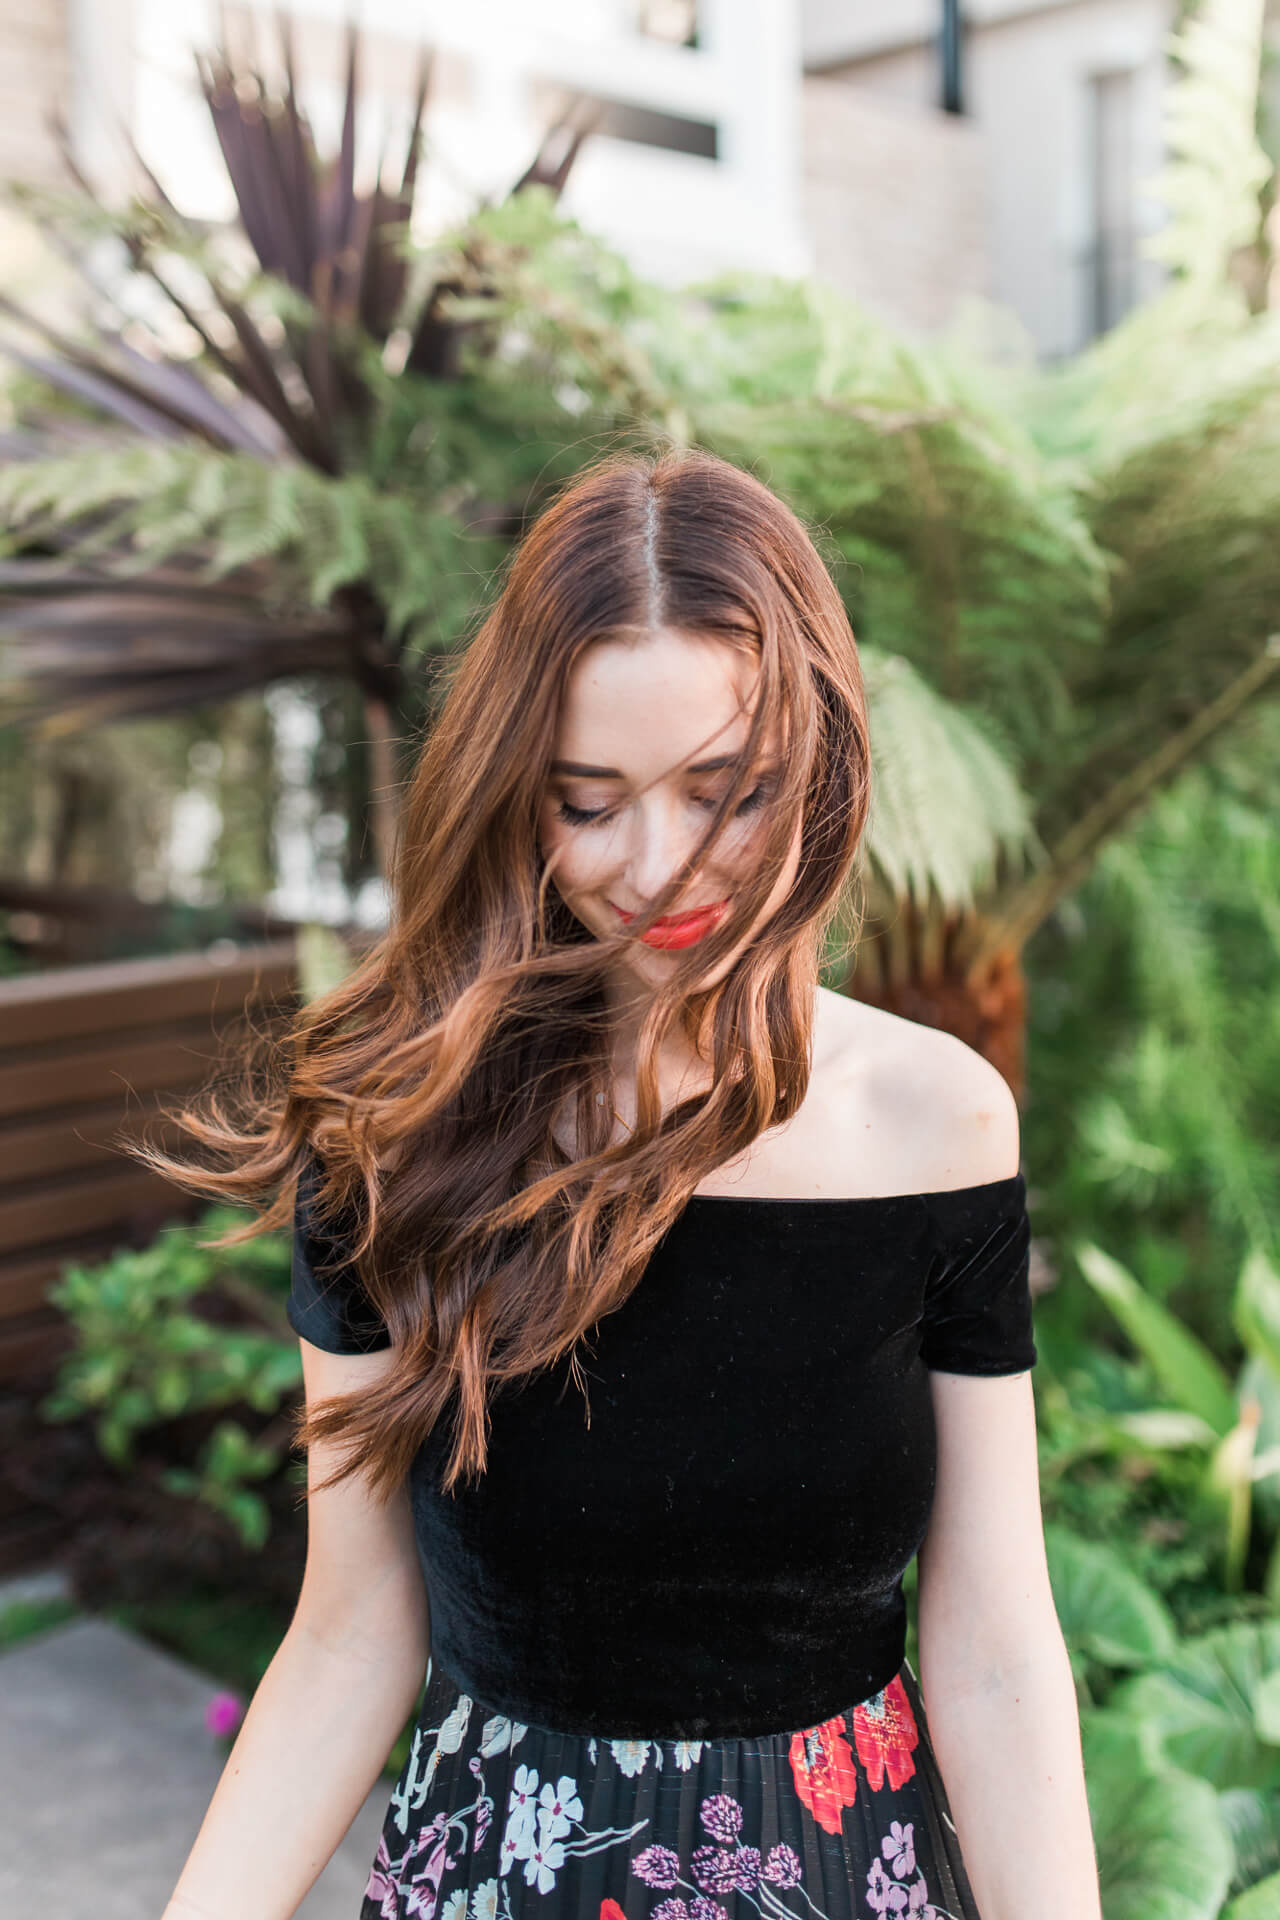 hair blowing in the wind with cute lip color